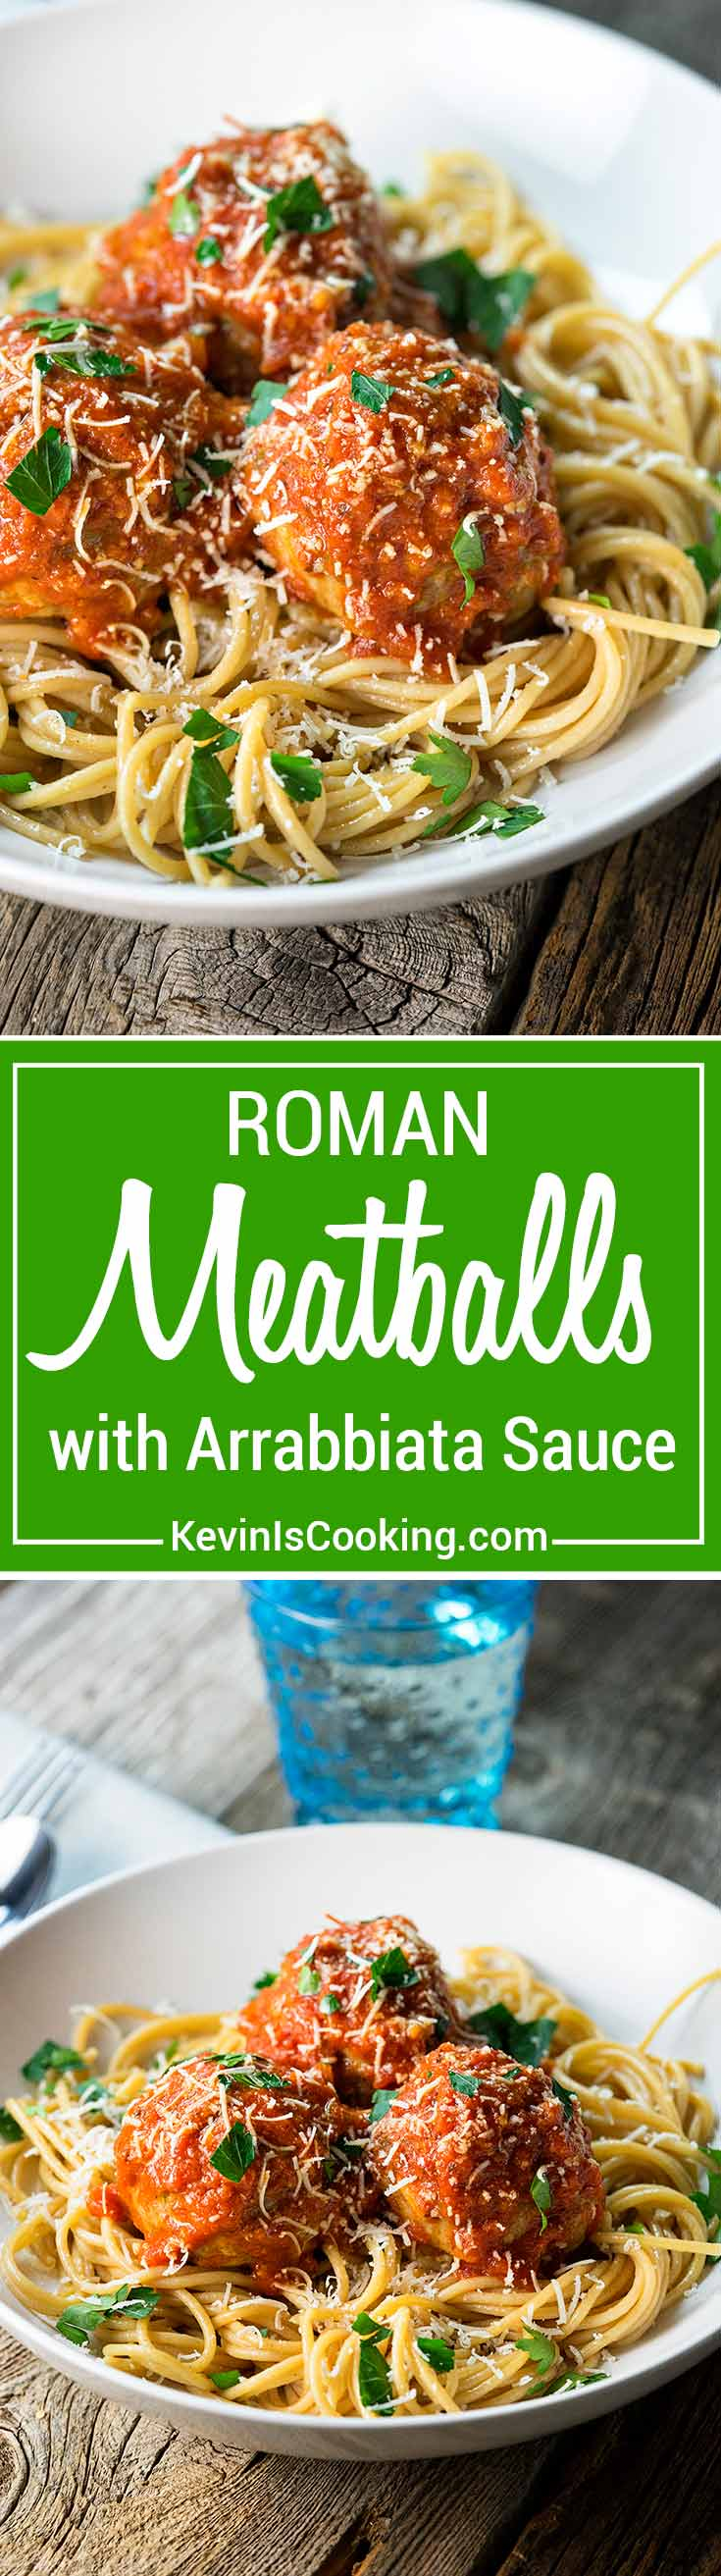 Homemade Arrabbiata Sauce - A wonderfully rich, zesty and spicy tomato sauce made from crushed tomatoes, red wine, garlic and red pepper flakes that is slowly simmered with herbs and onions. Perfect for over any pasta and meatballs.